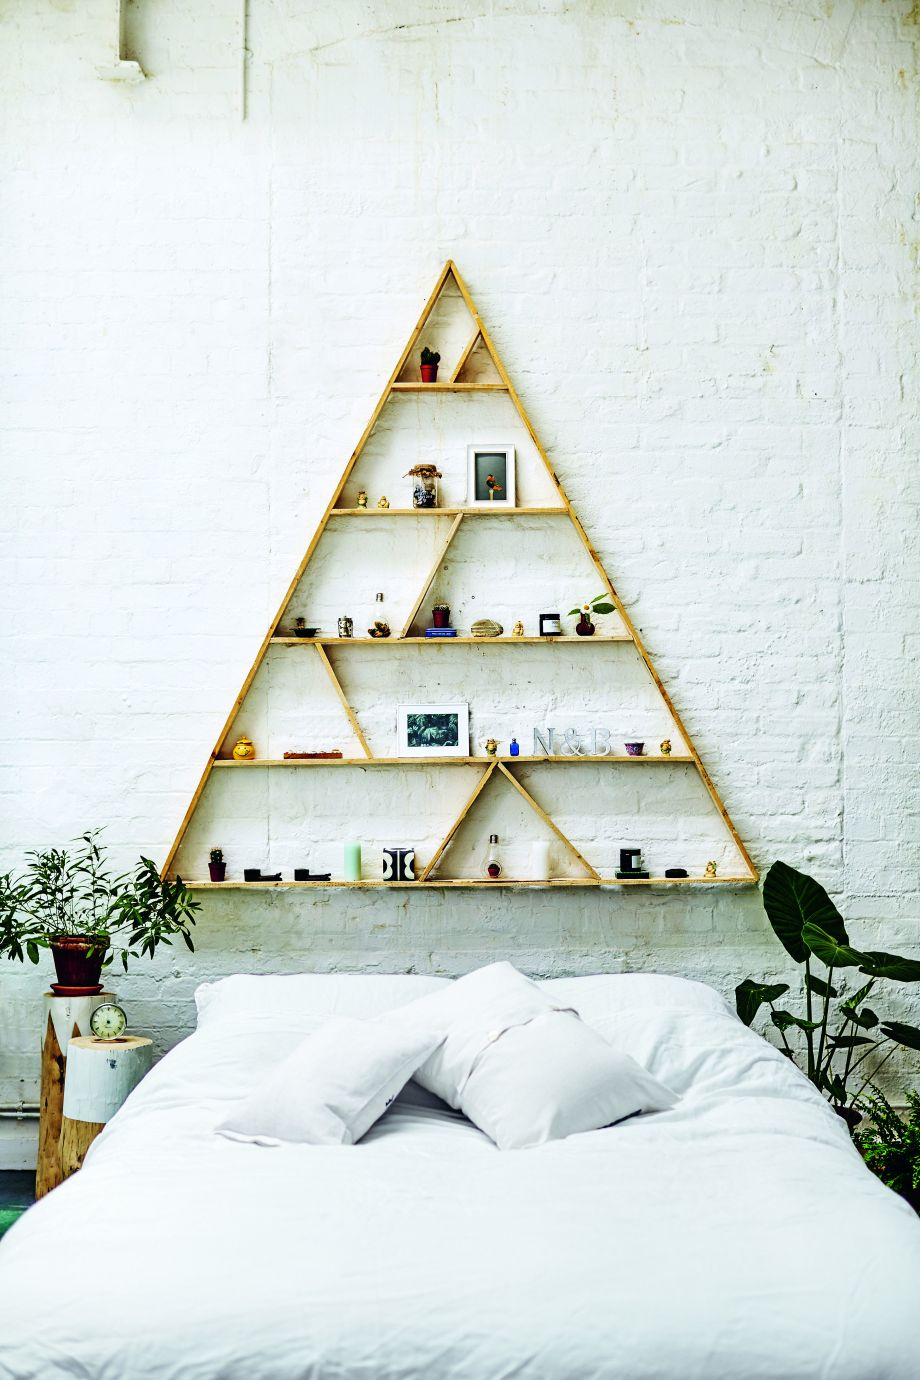 Pallet Style - 20 creative projects using recycled pallets